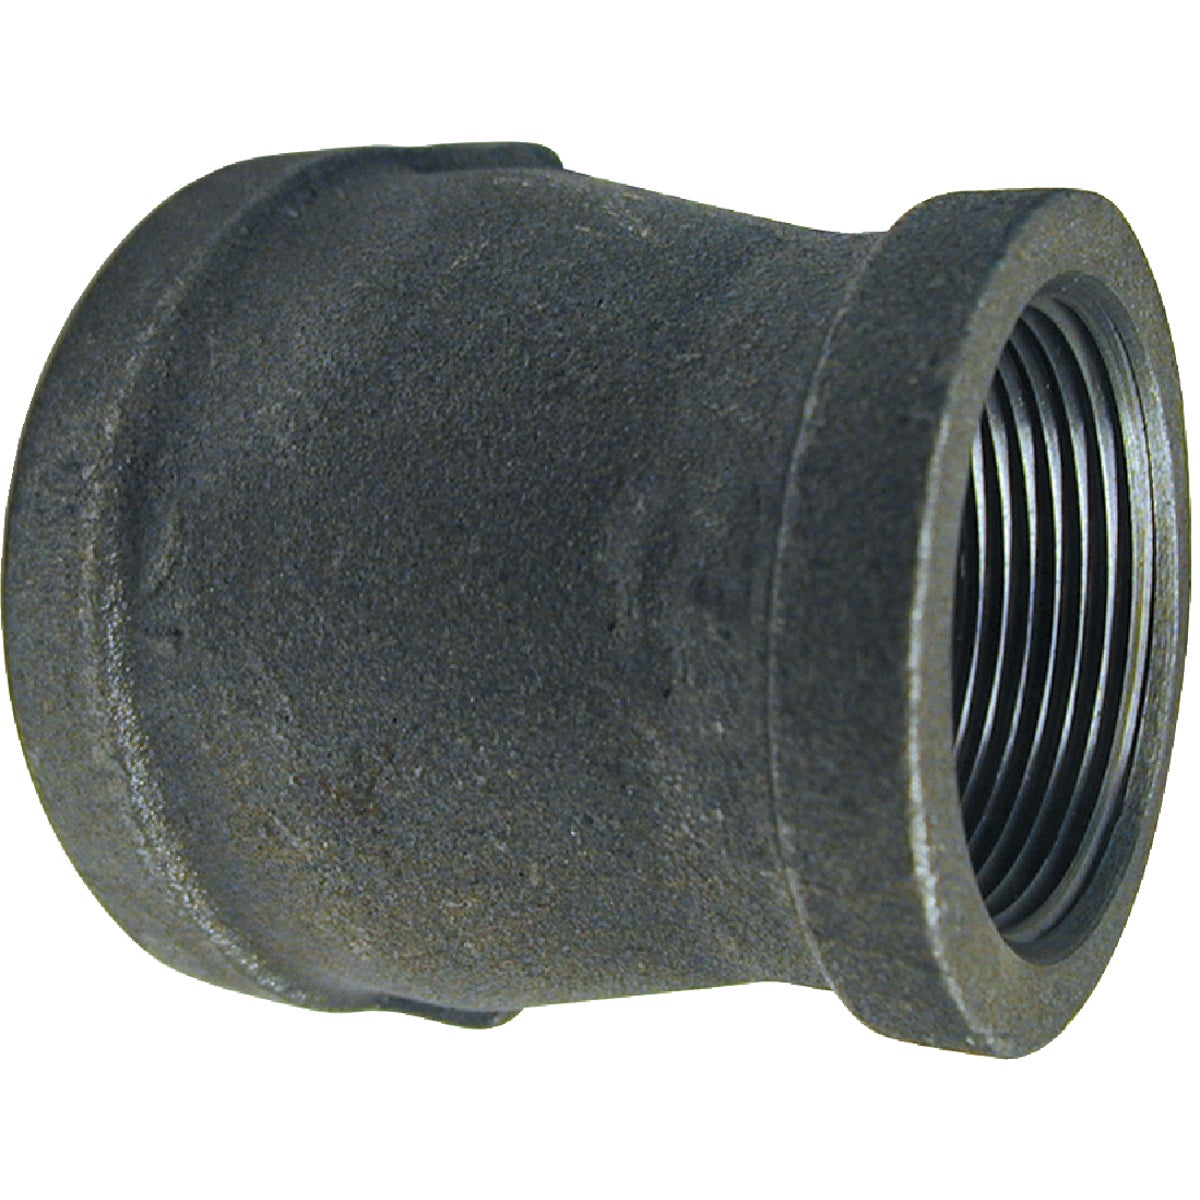 2X1-1/2 BLACK COUPLING - 521-387BG by Mueller B K